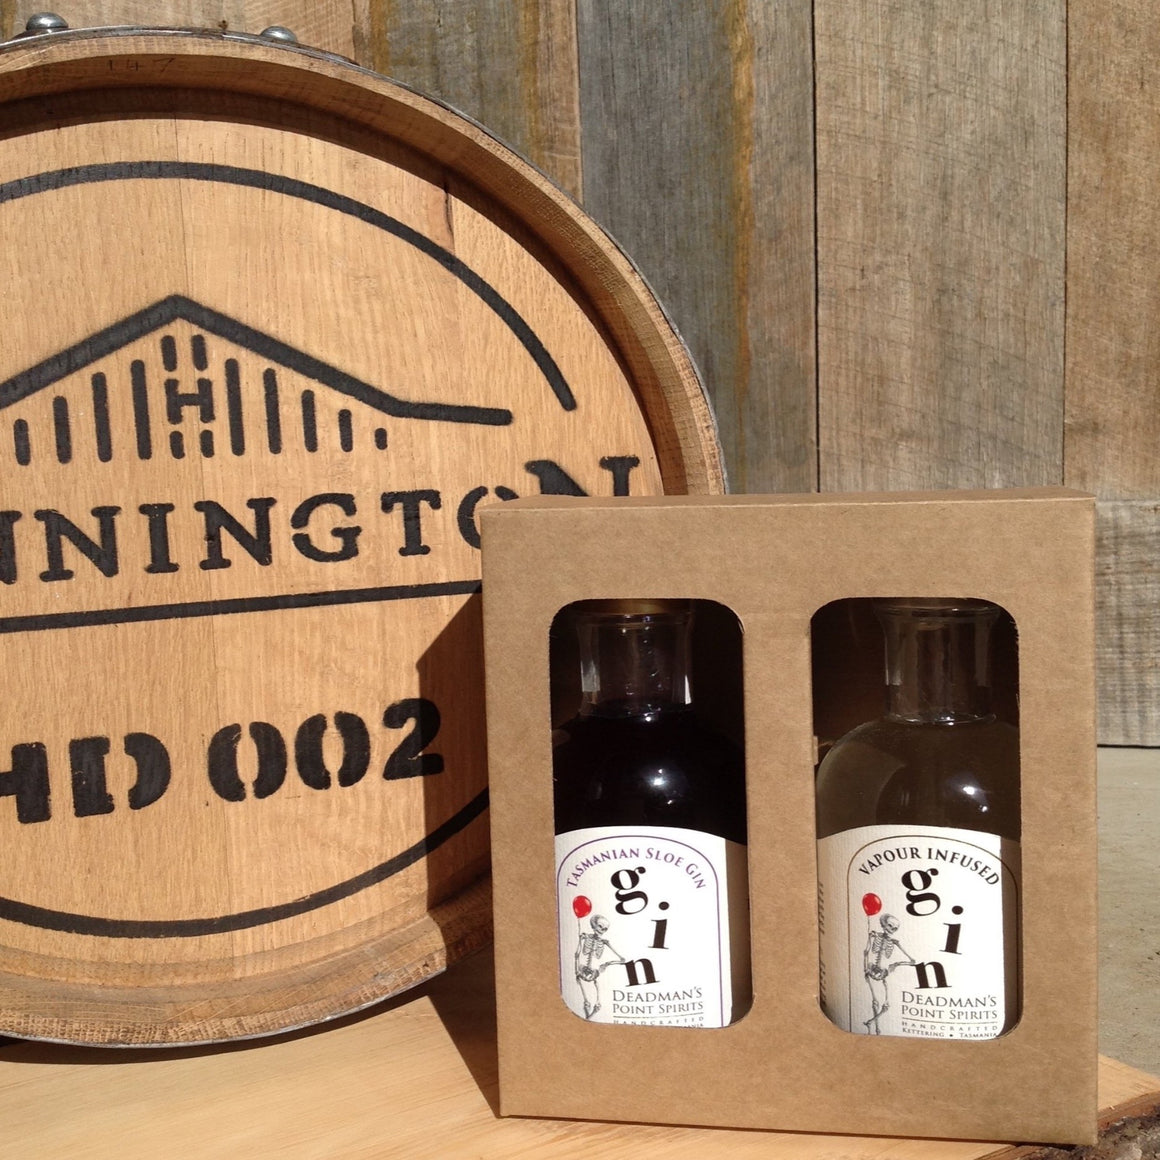 Sloe & Vapour Infused Gin Twin Pack